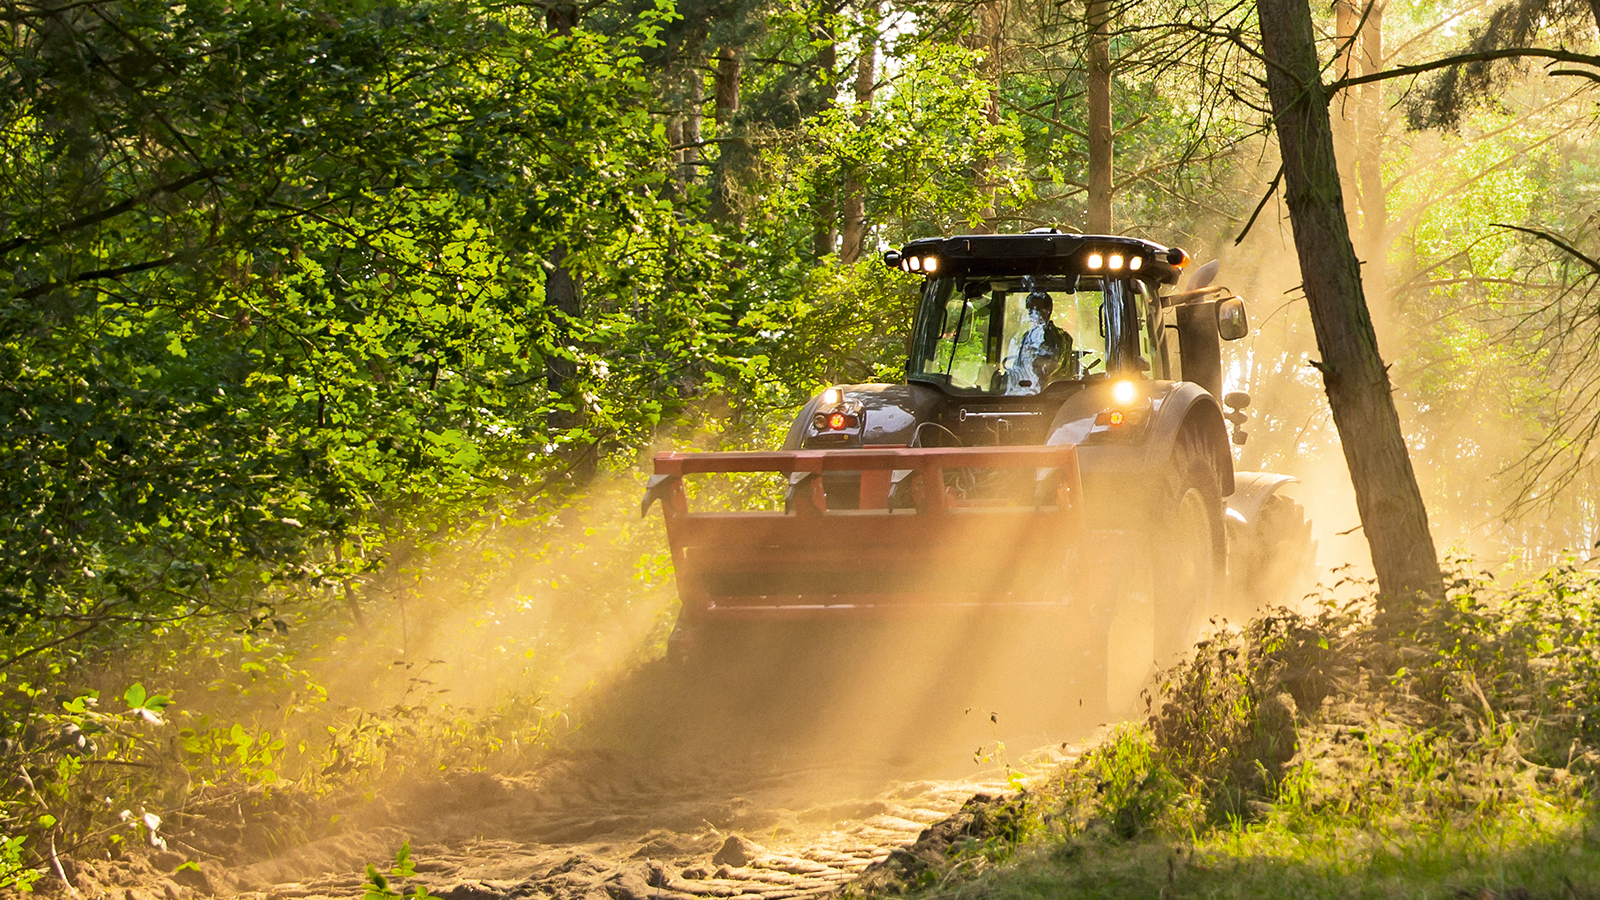 altra twintrac tractor in forest